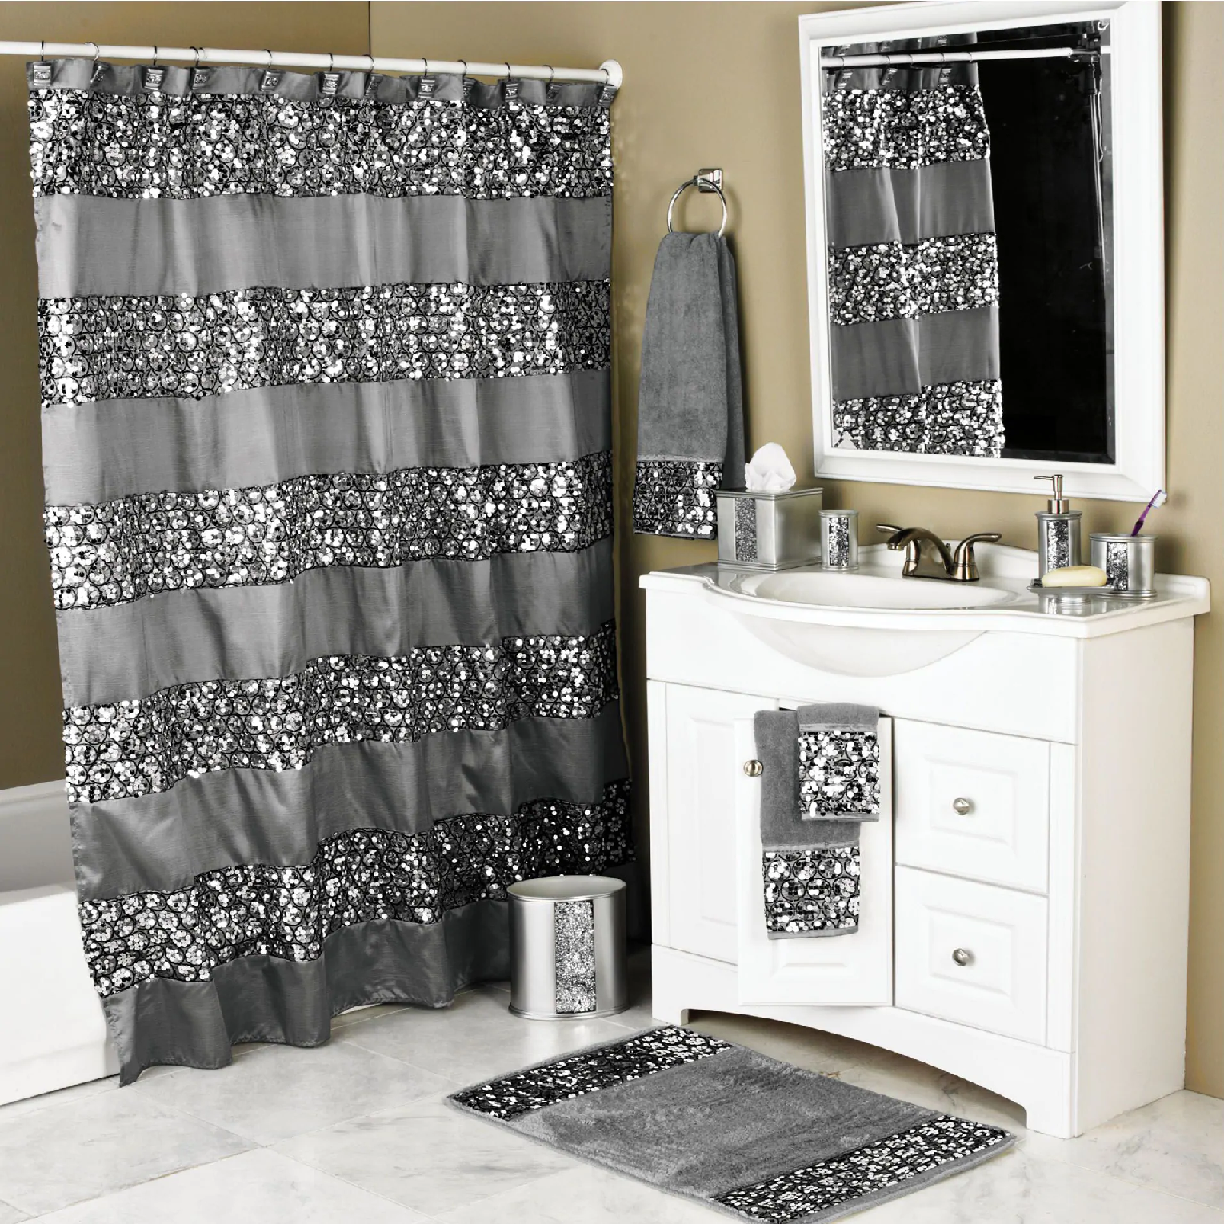 Bling for your bathroom Matching Sequin Shower, Bath Towel, Face Towel and Foot Mat